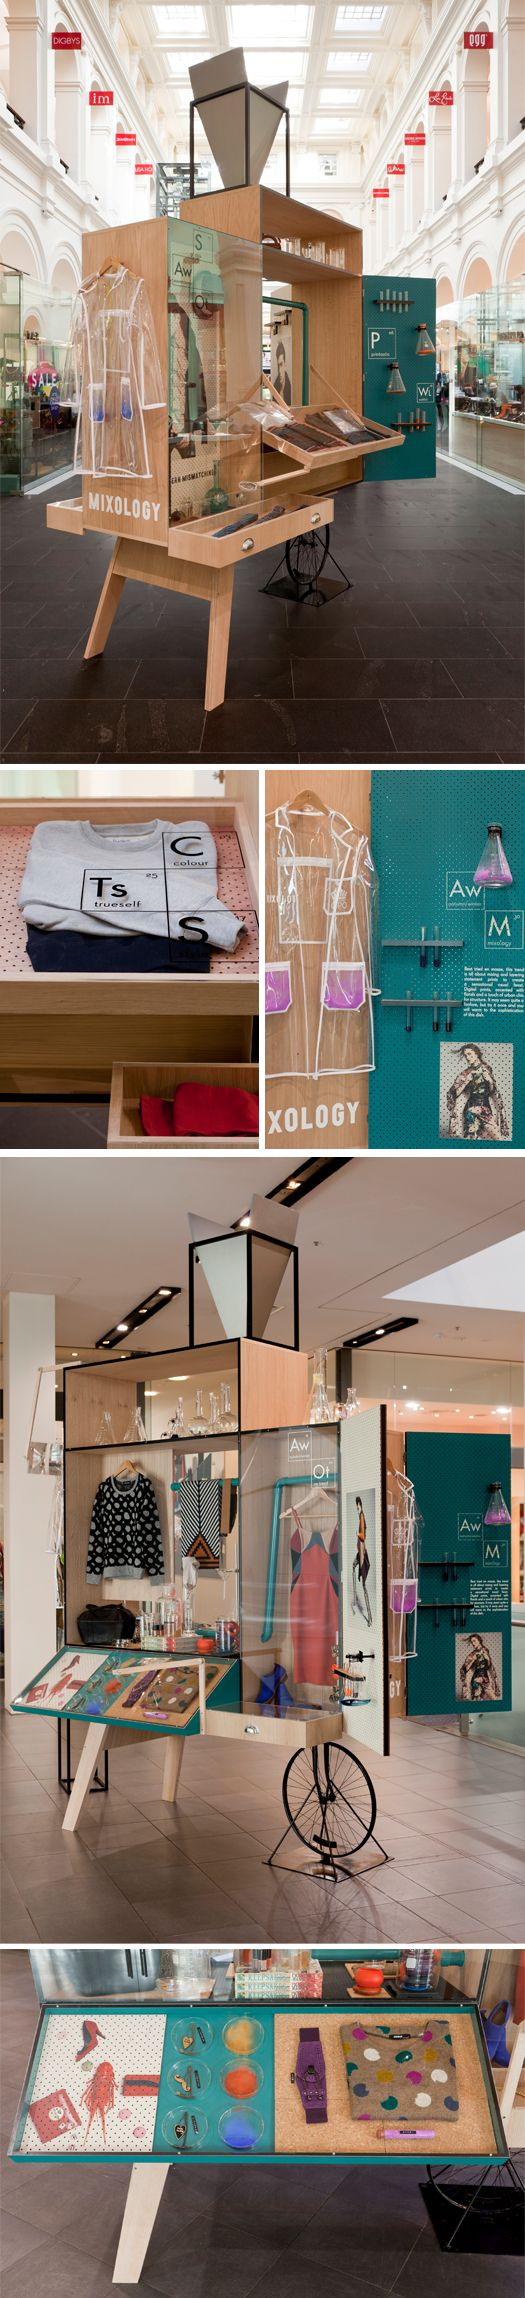 a series of curious carts that house a fashion infused experiment. instead of booths, lets use carts! if concept fits